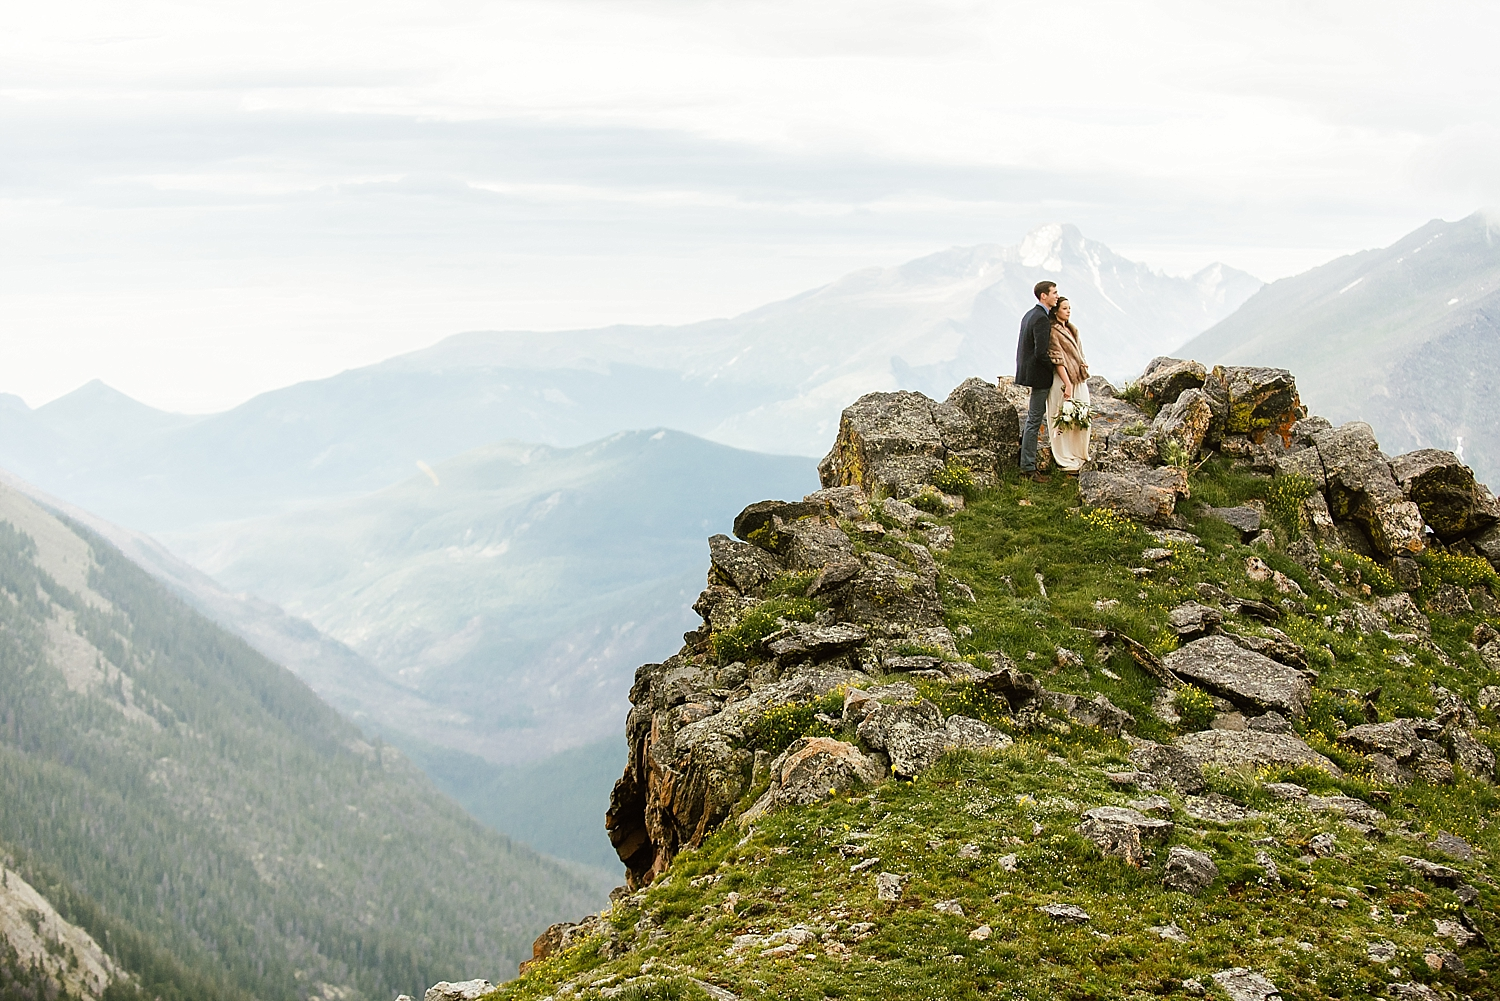 I can't believe my eyes when I see this amazing Colorado cliffside wedding! This ceremony location in Rocky Mountain national park is the perfect RMNP elopement location. Jessica and Edward picked such an amazing elopement location! | RMNP elopement photos by Estes Park wedding photographer, Maddie Mae.